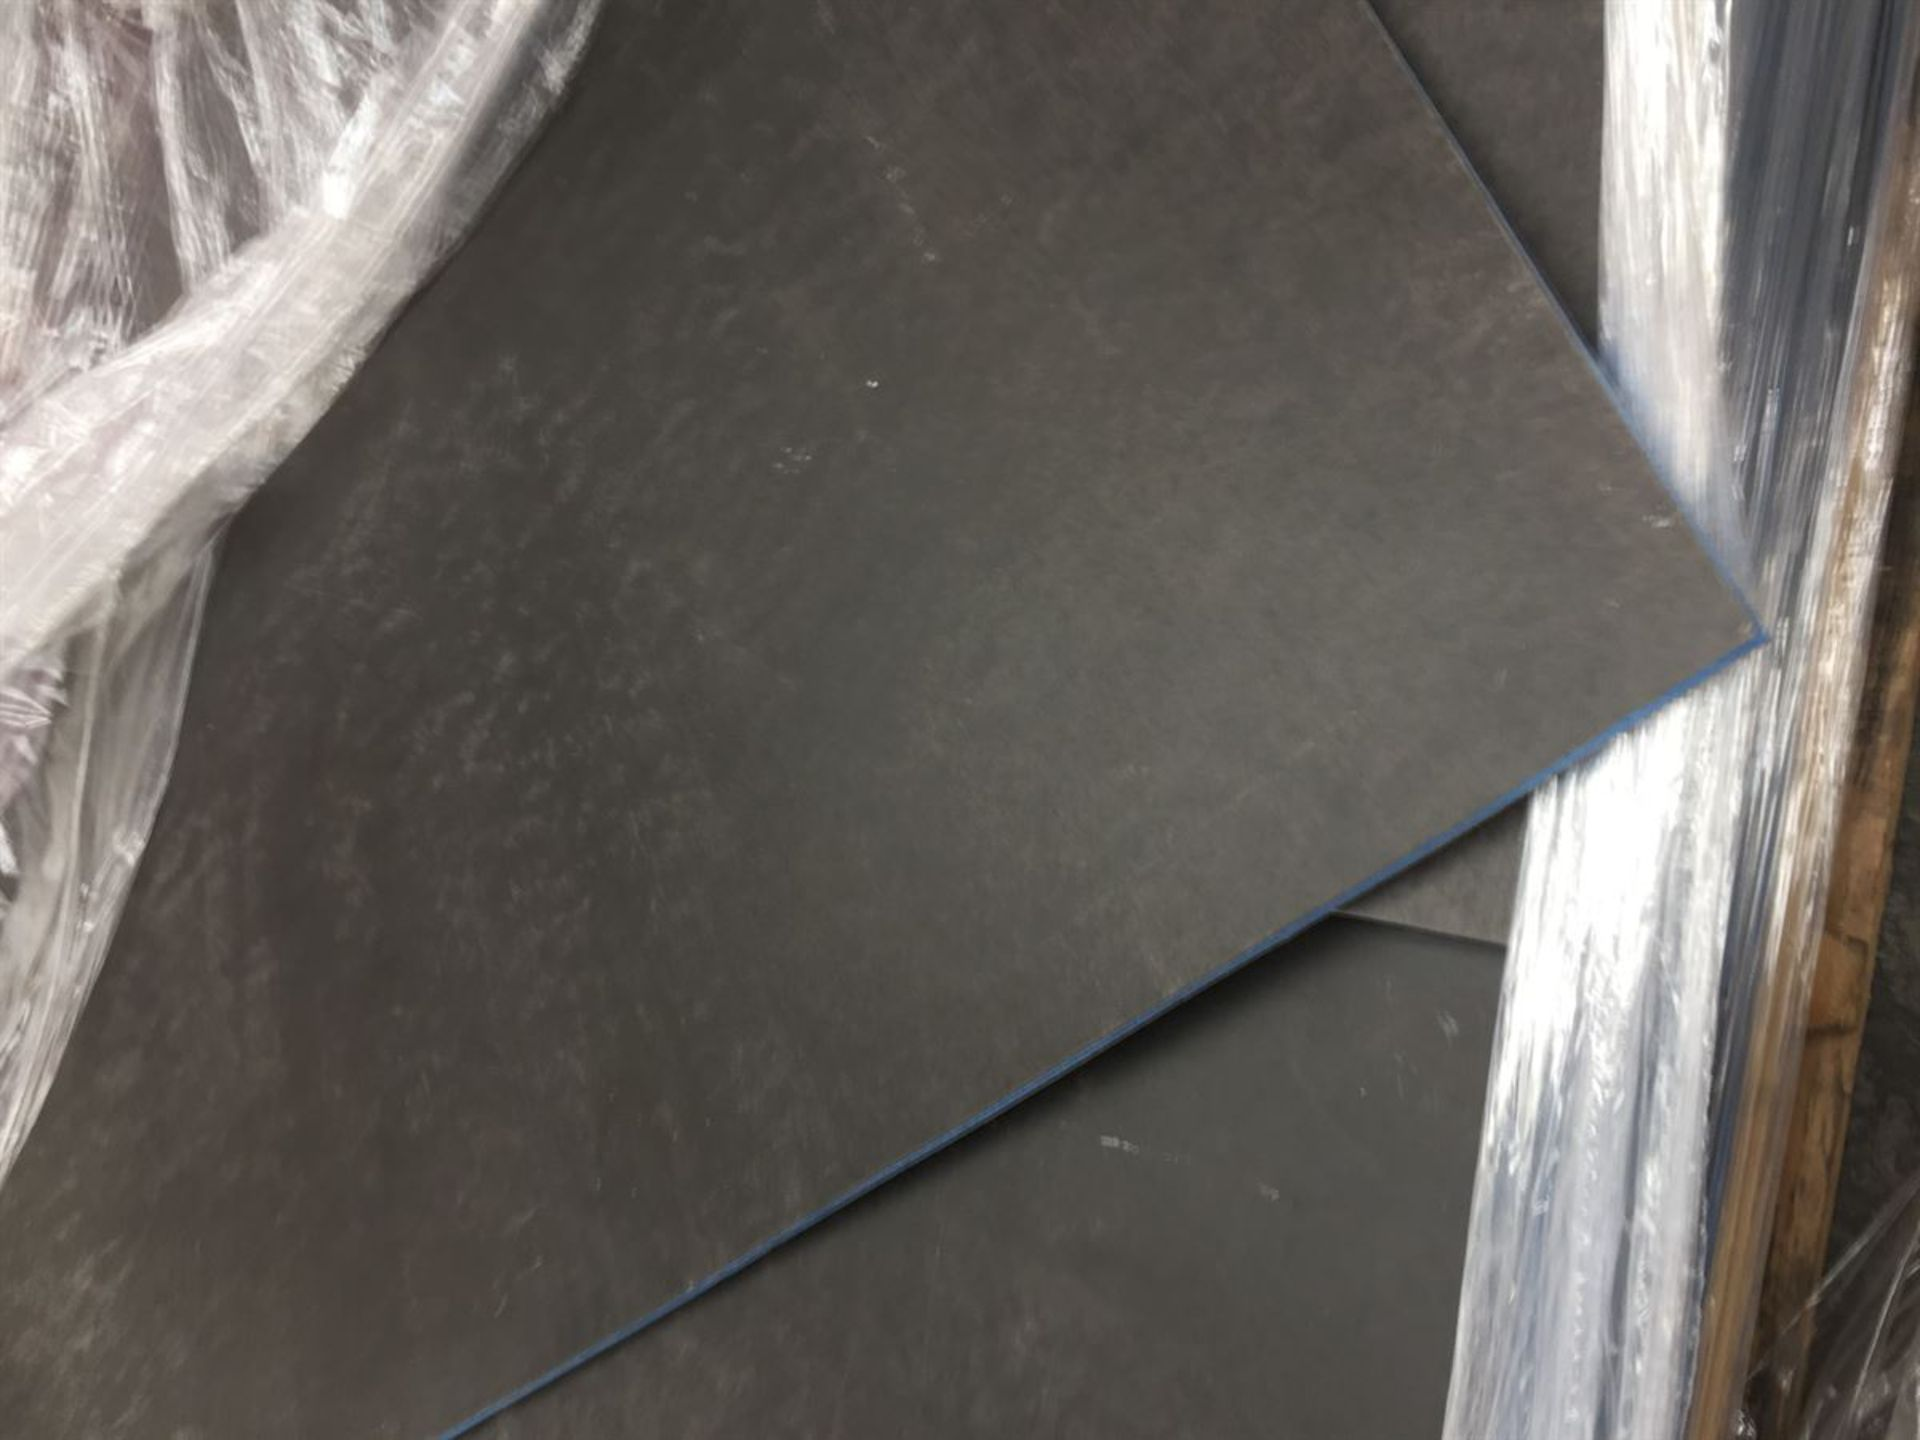 2x Acoustilay Acoustic Heavyweight Sound Reduction Floor Tiles - Image 3 of 4